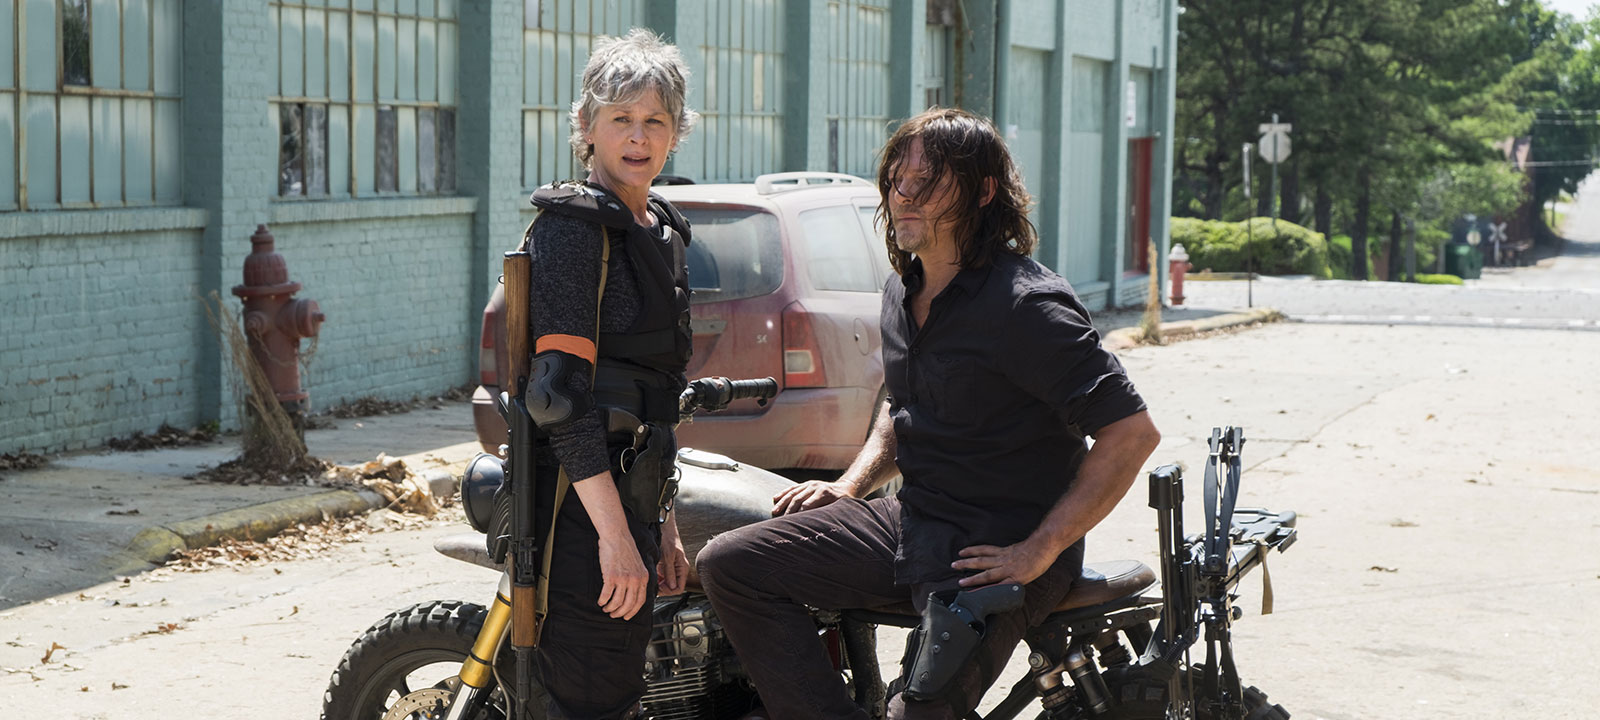 the-walking-dead-episode-801-carol-mcbride-daryl-reedus-800×600-photos